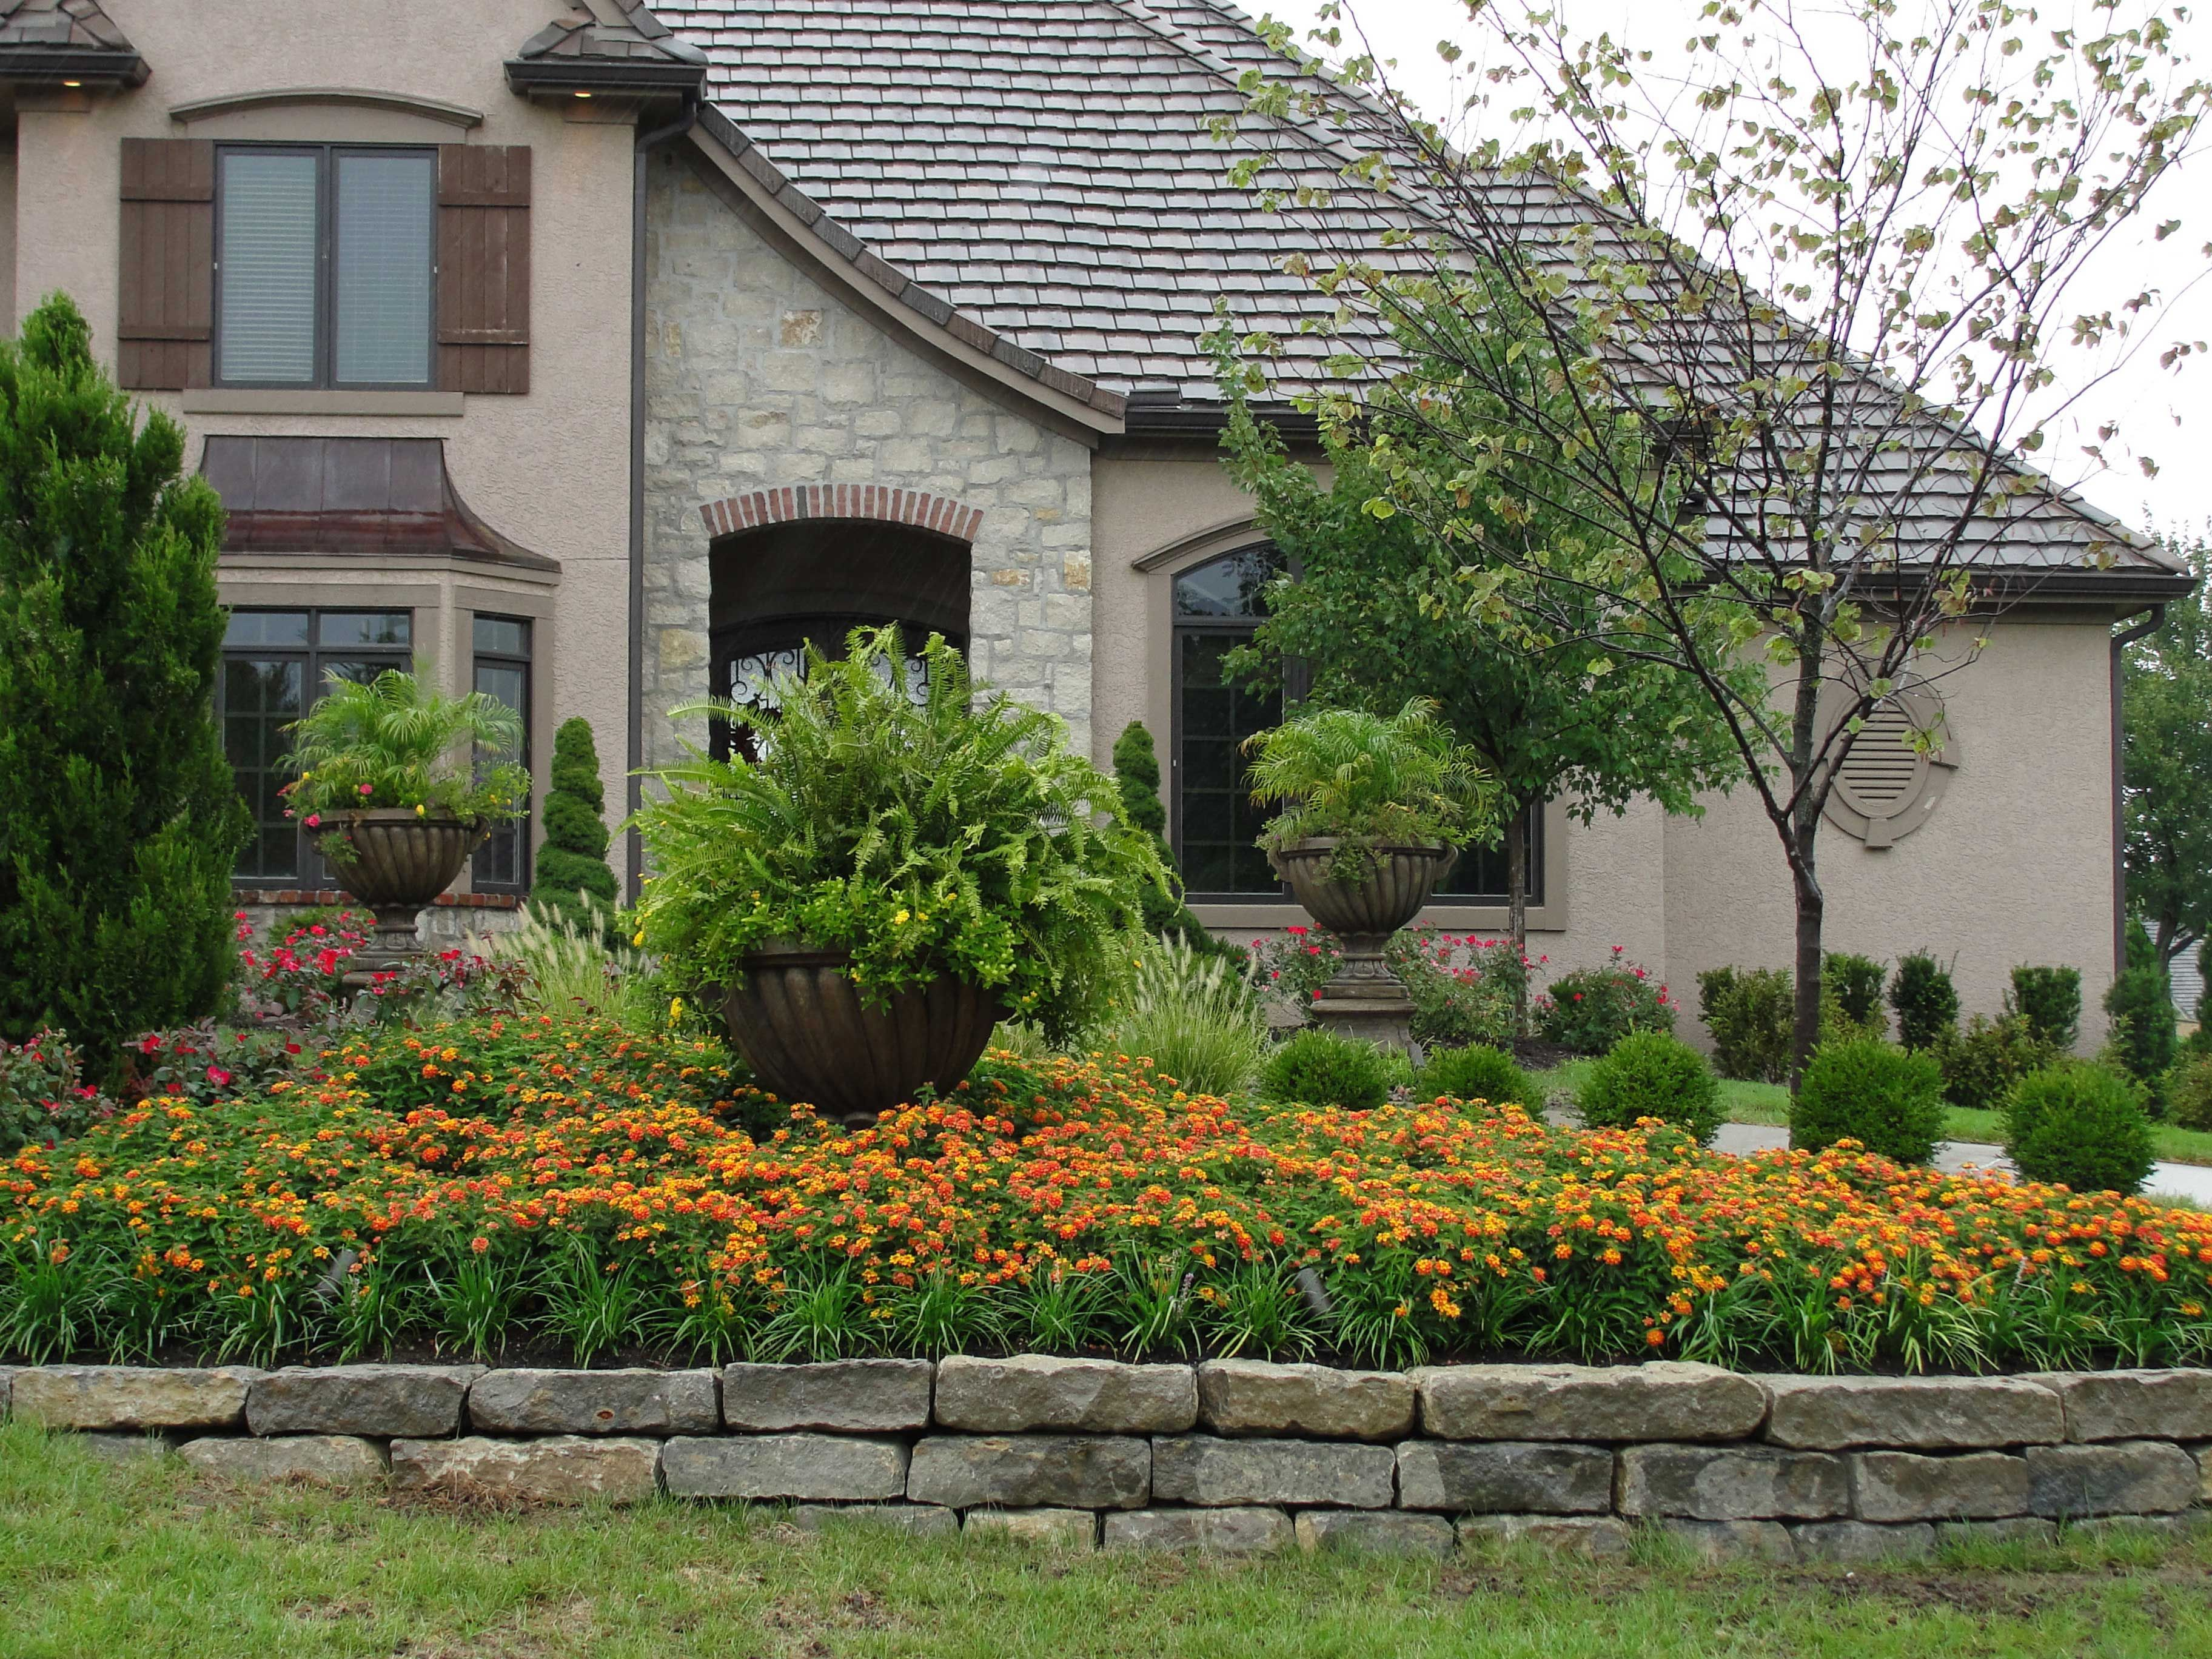 kansas city retaining walls & landscaping professionals | rosehill